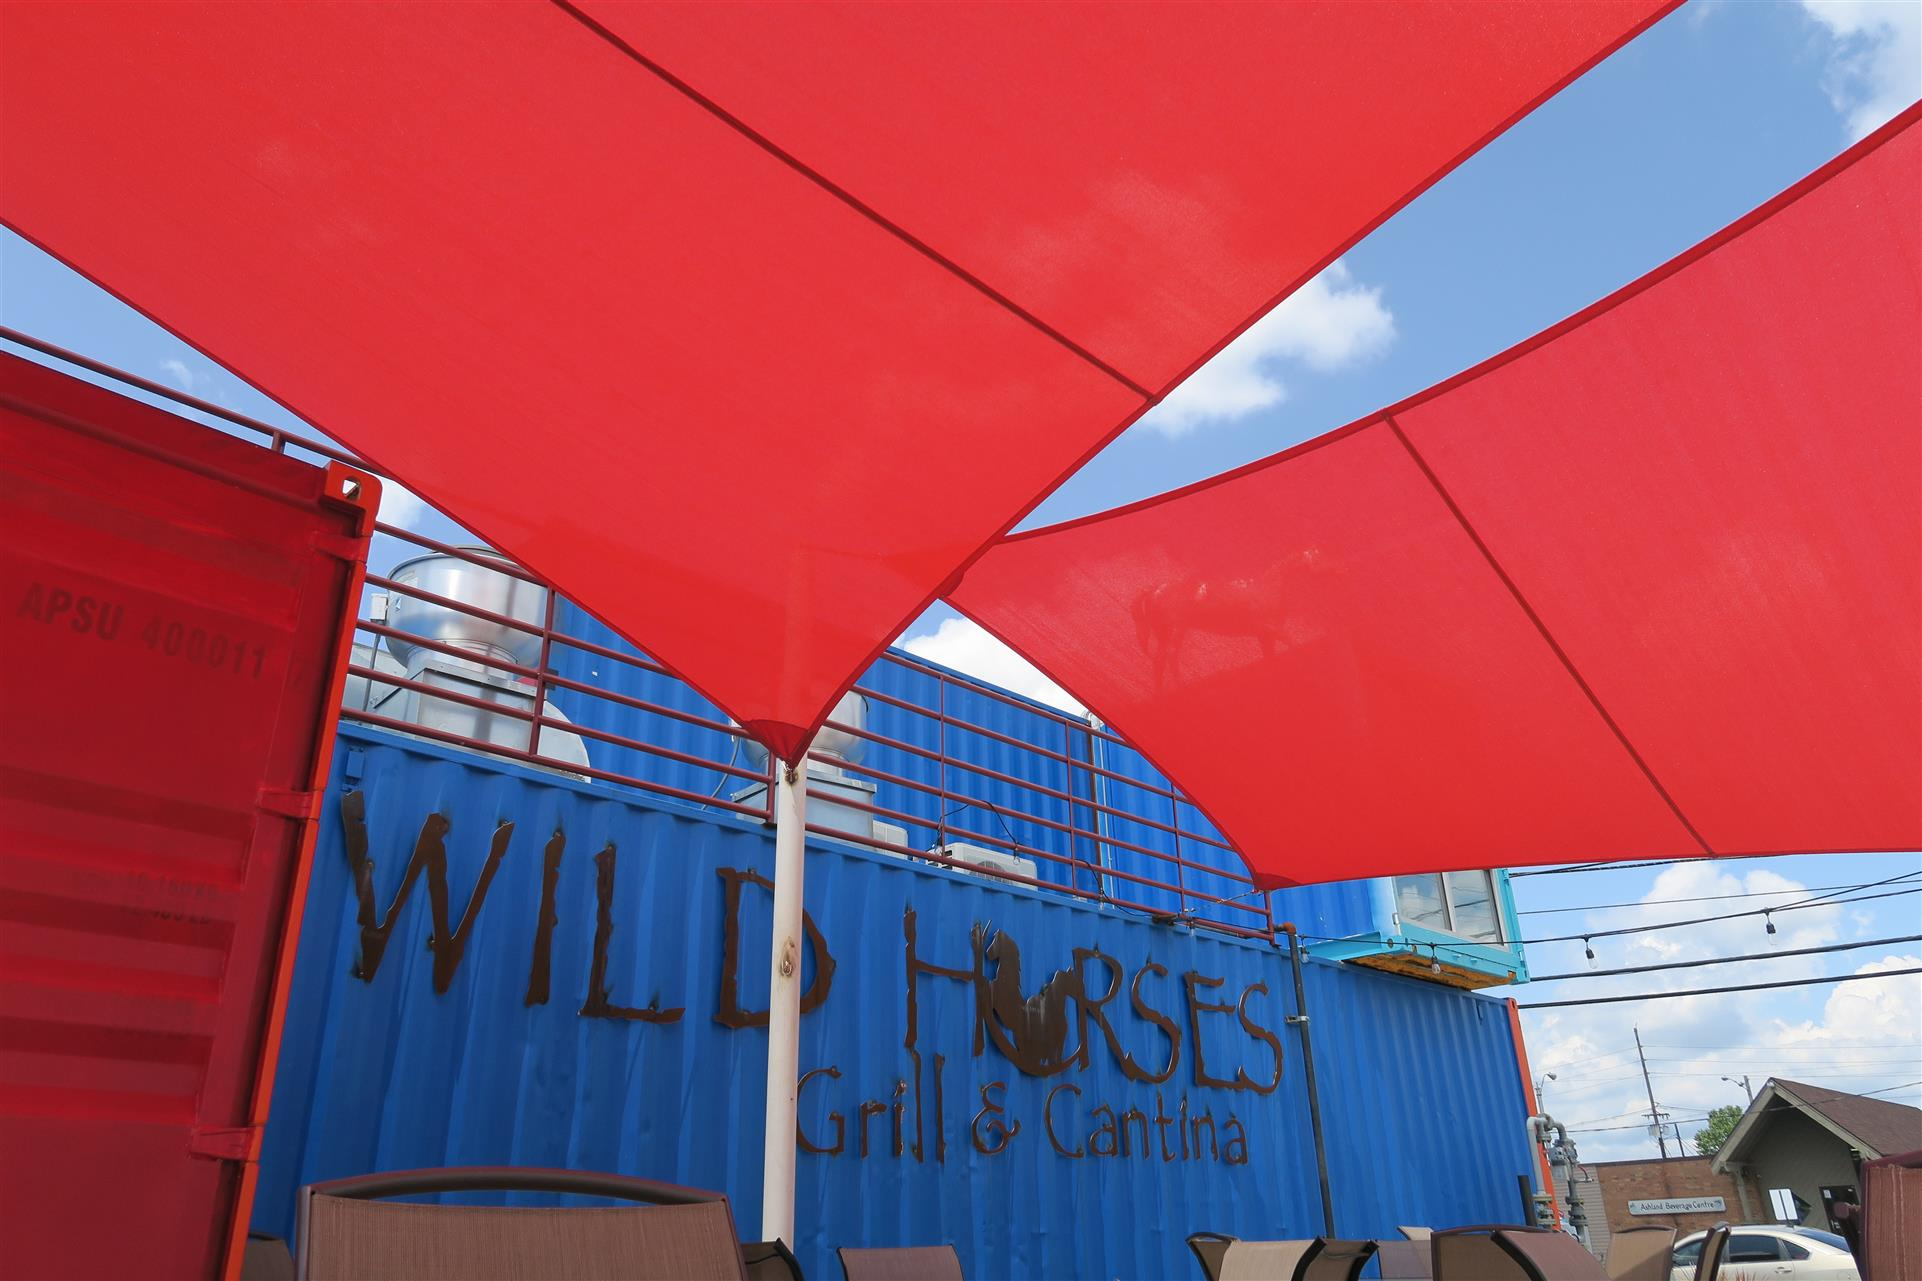 view of wild horses grill and cantina logo on side of storage container with over hang canopies above